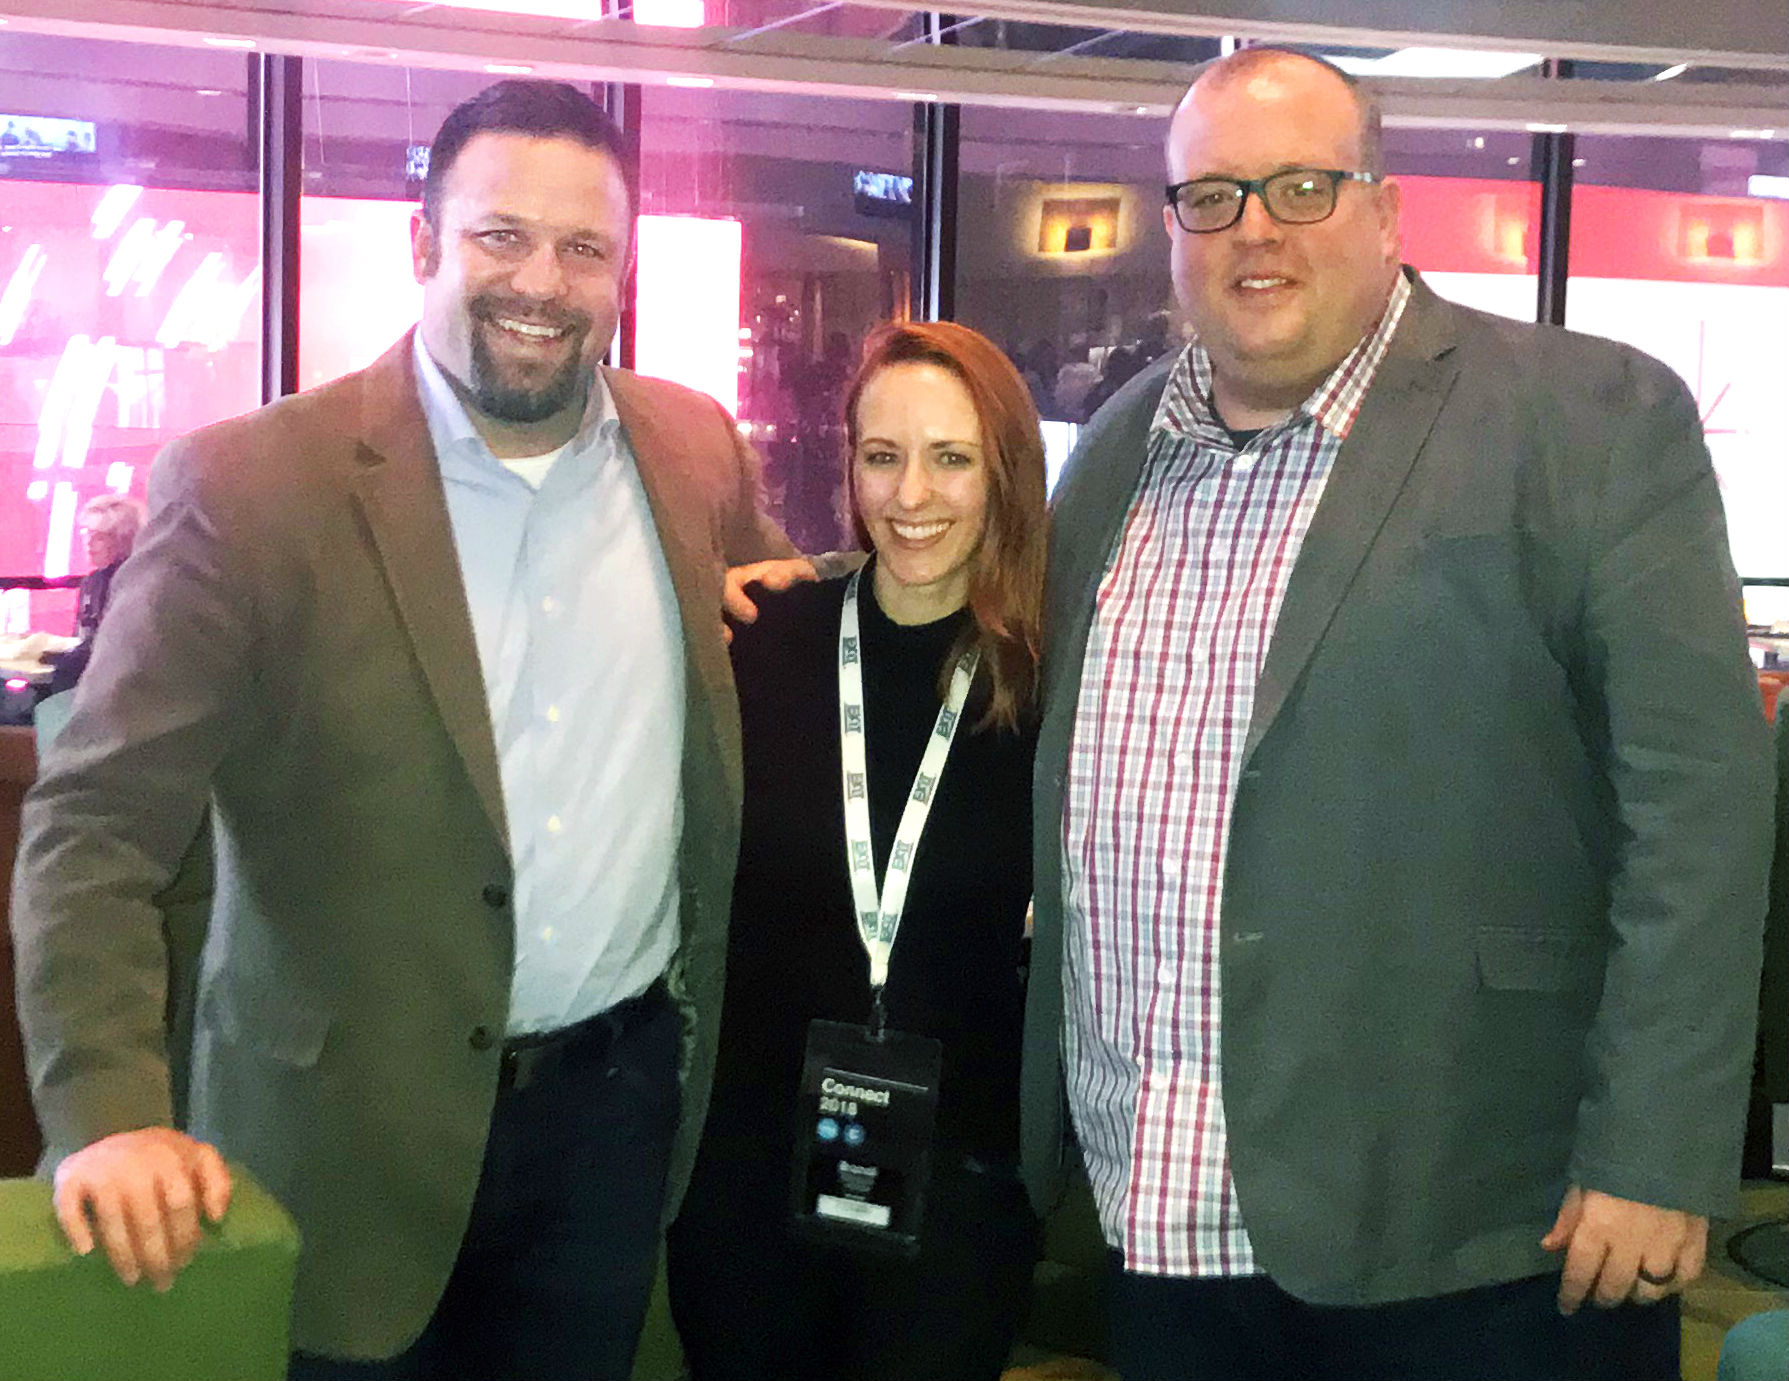 Chris Avery, Brandi Whitlock, and Greg Hicks attend Inman Connect NY 2018.